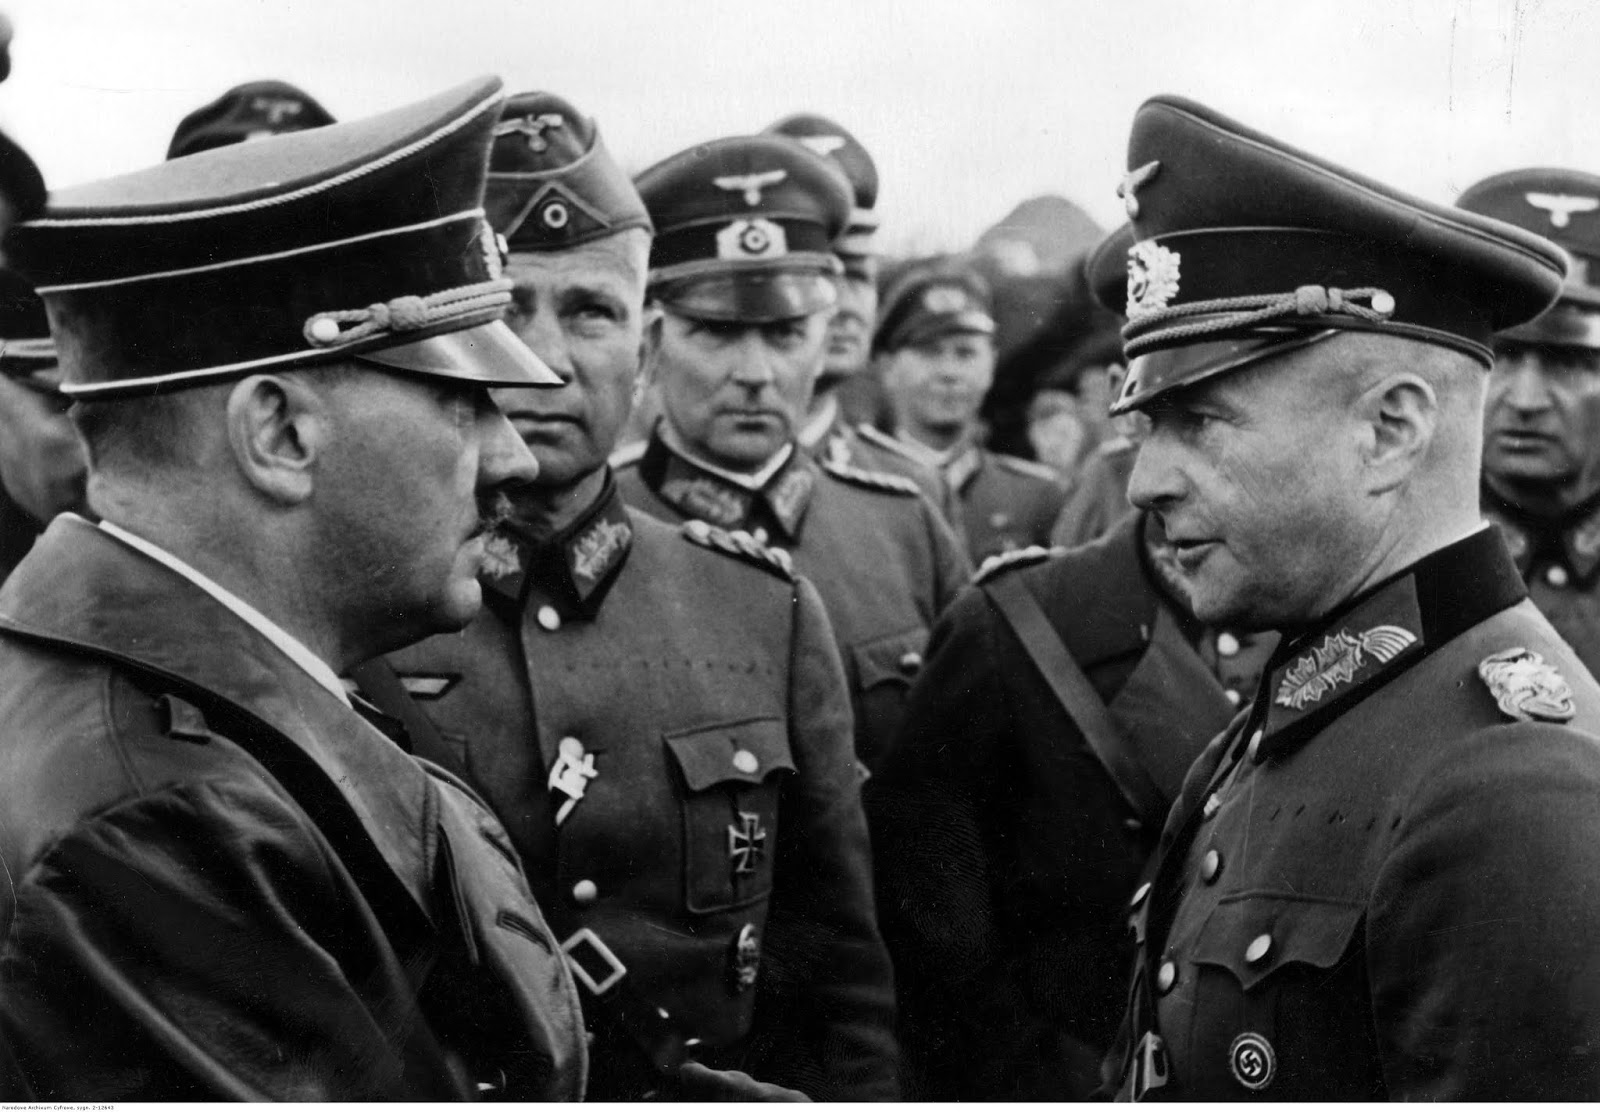 Adolf Hitler at Alexandrow airport visits Heeresgruppe Süd during the attacks on Warsaw